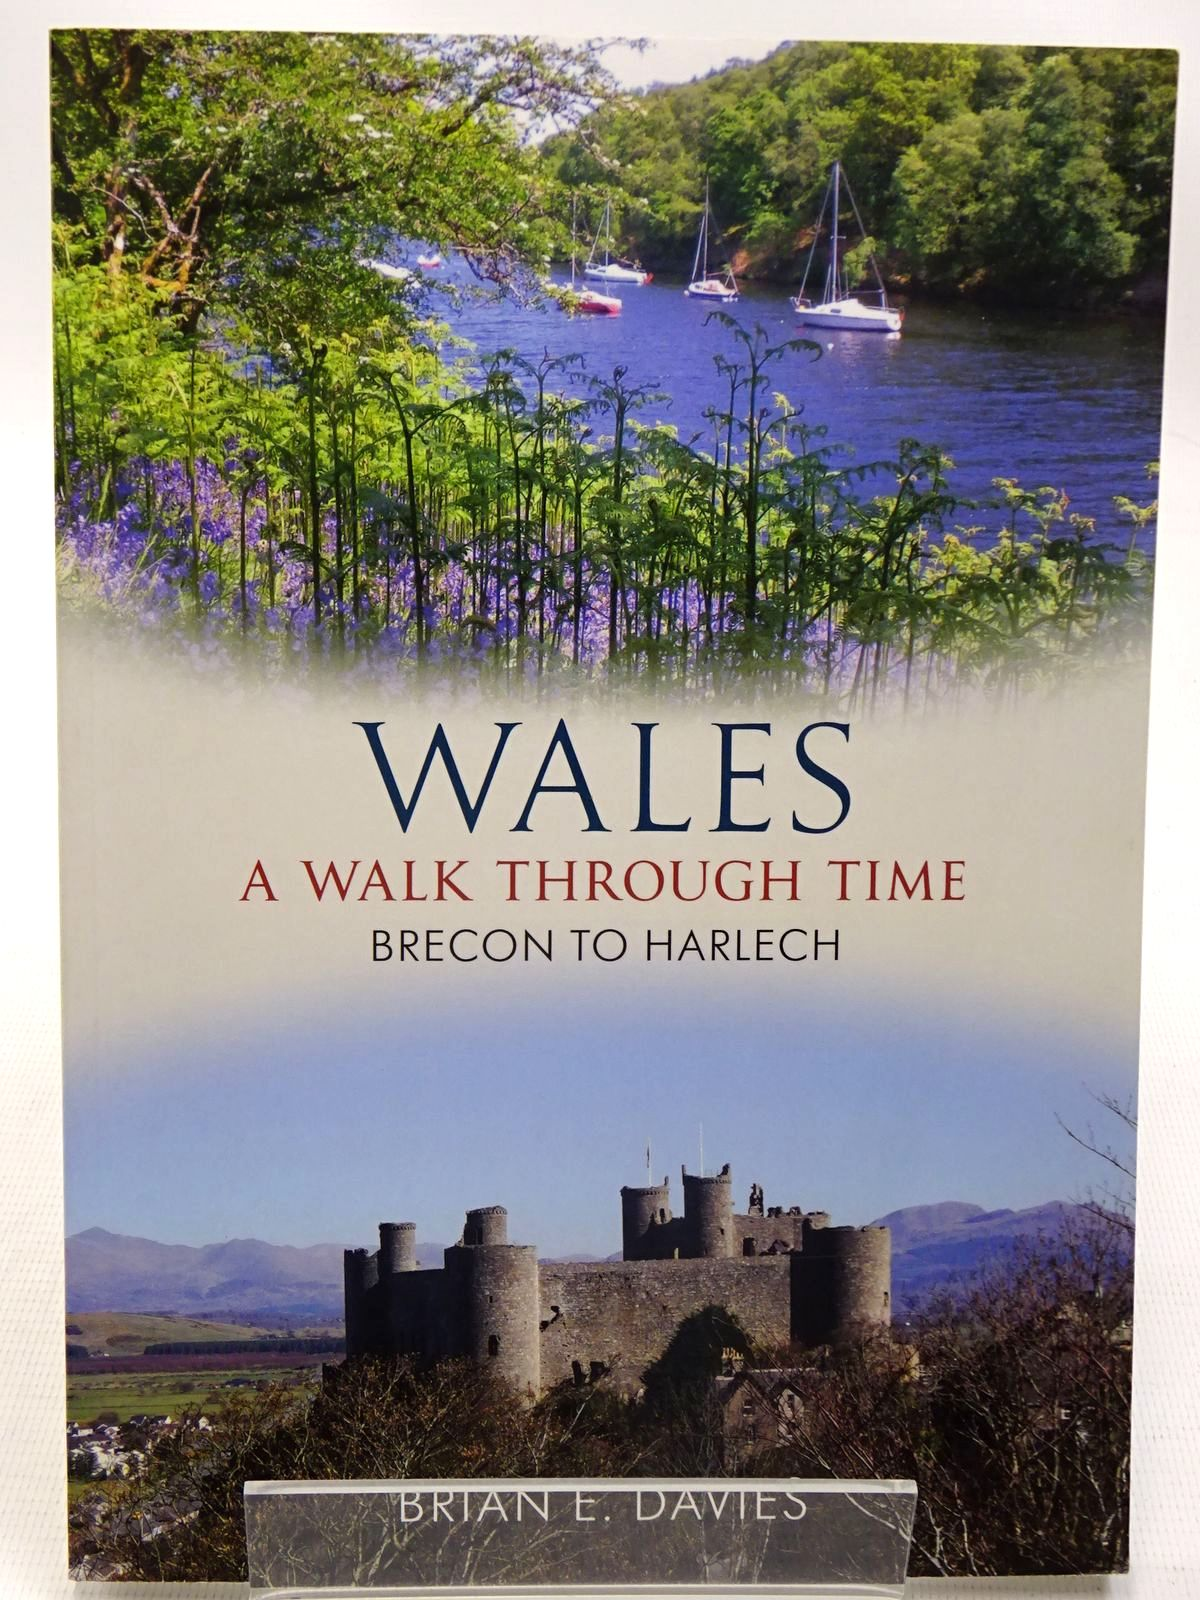 Photo of WALES A WALK THROUGH TIME written by Davies, Brian E. published by Amberley Publishing (STOCK CODE: 2126505)  for sale by Stella & Rose's Books